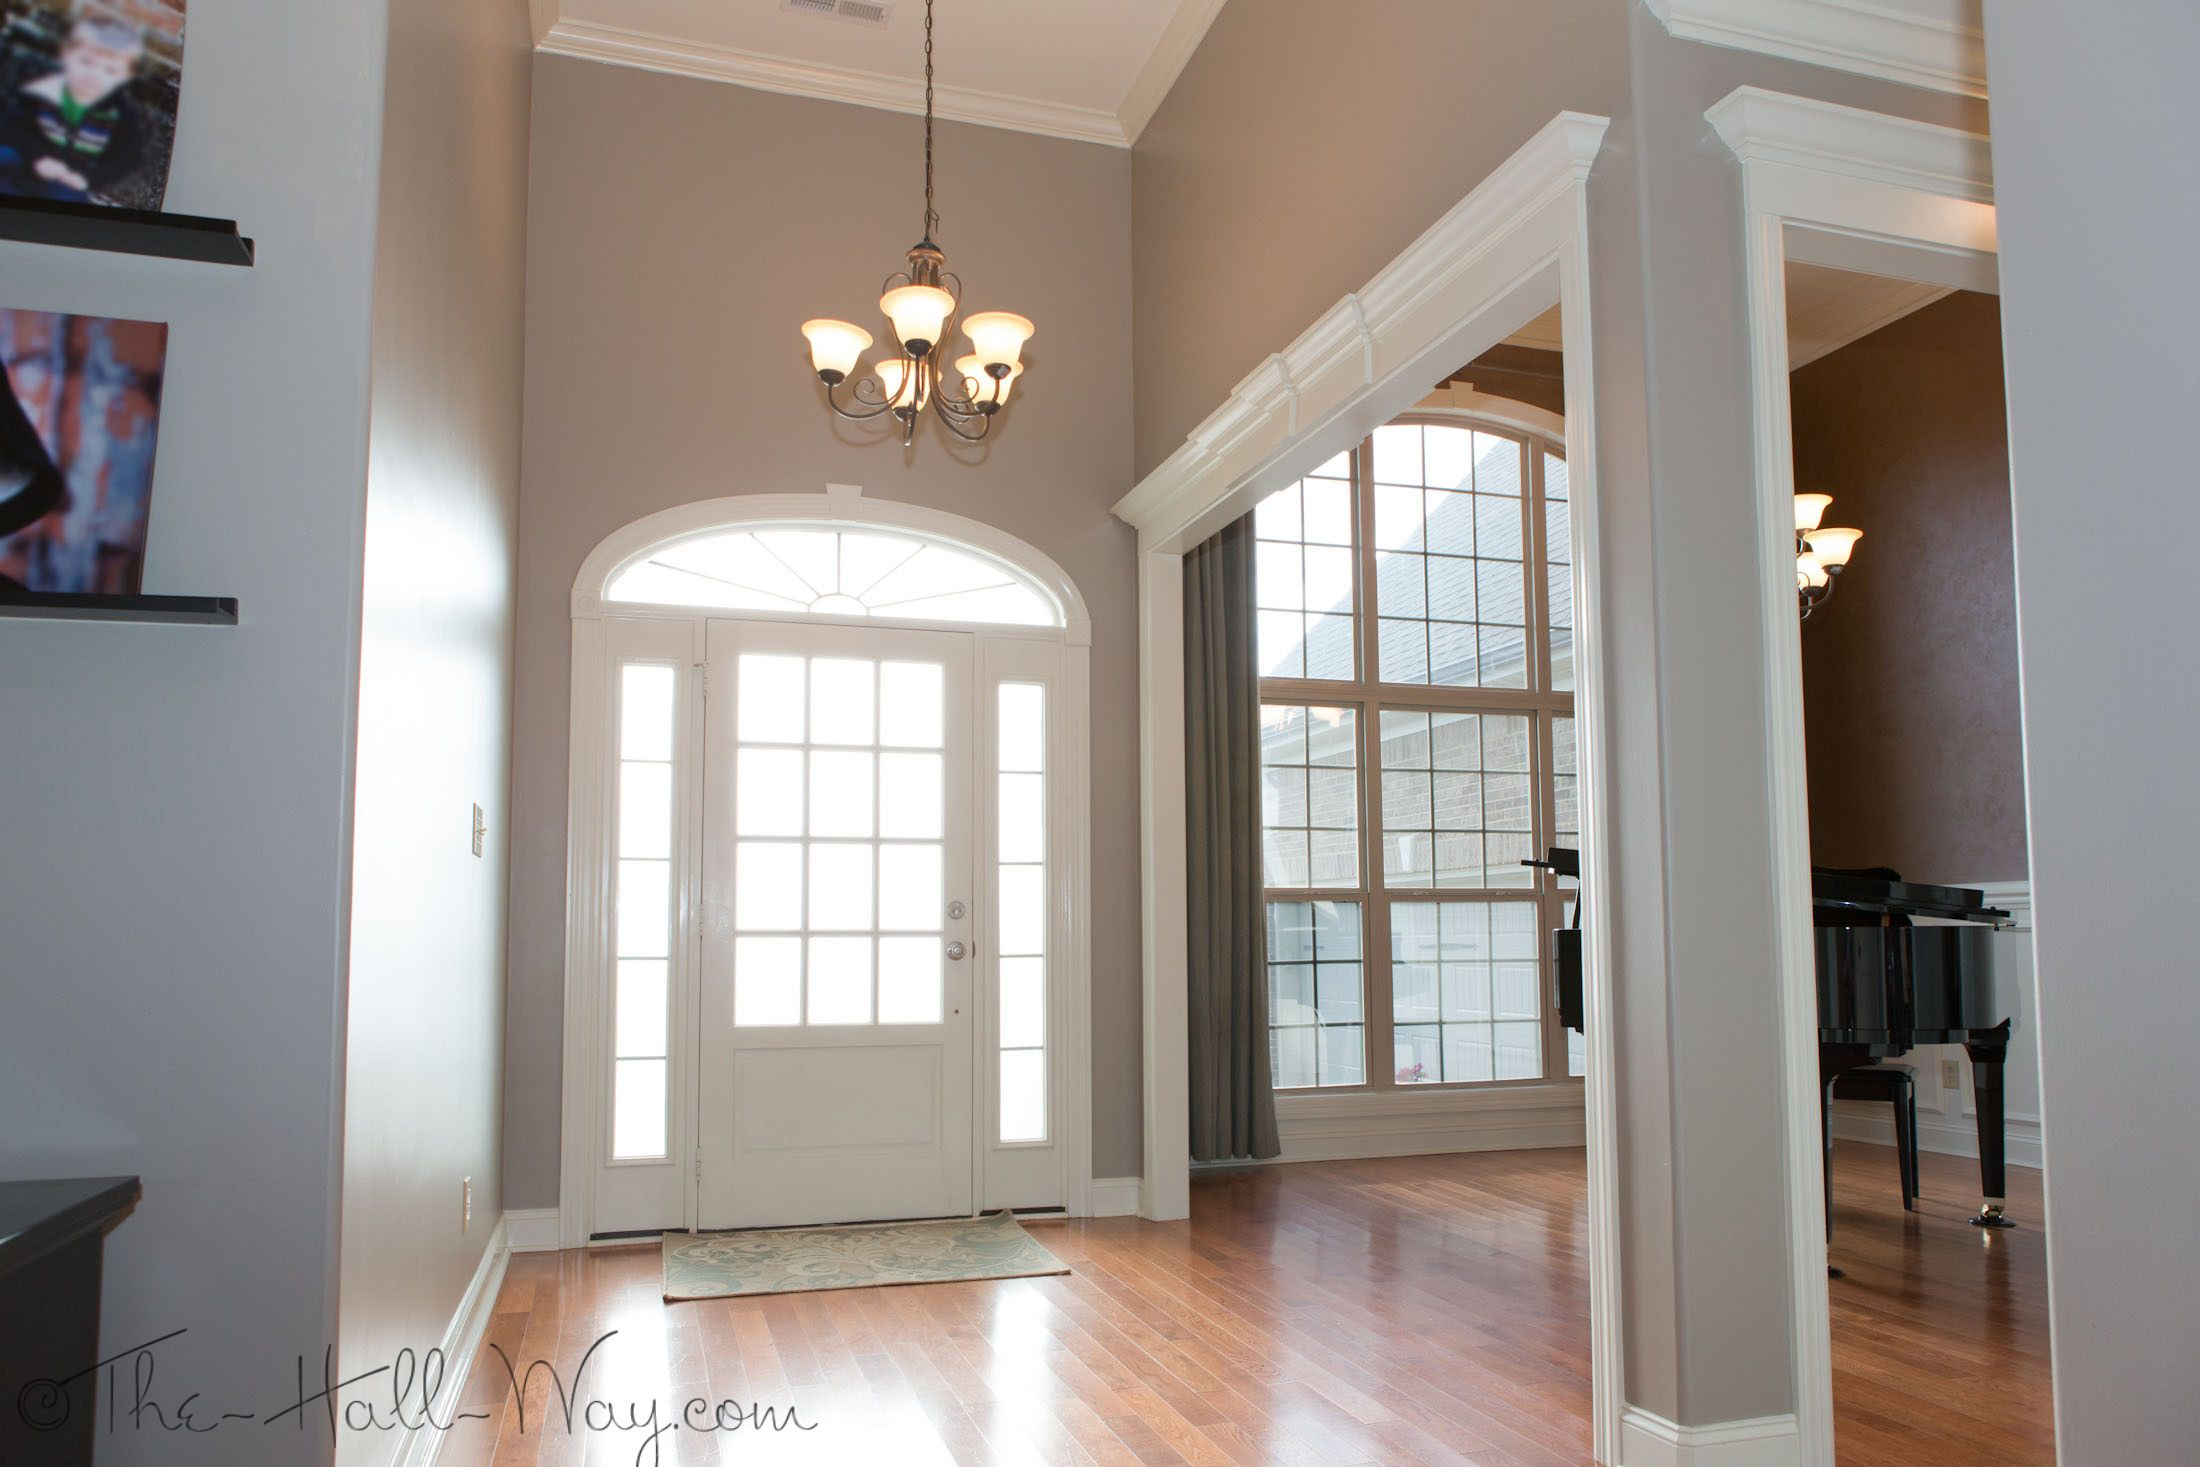 Foyer stone lion sherwin williams paint paint colors - Sherwin williams loggia exterior ...